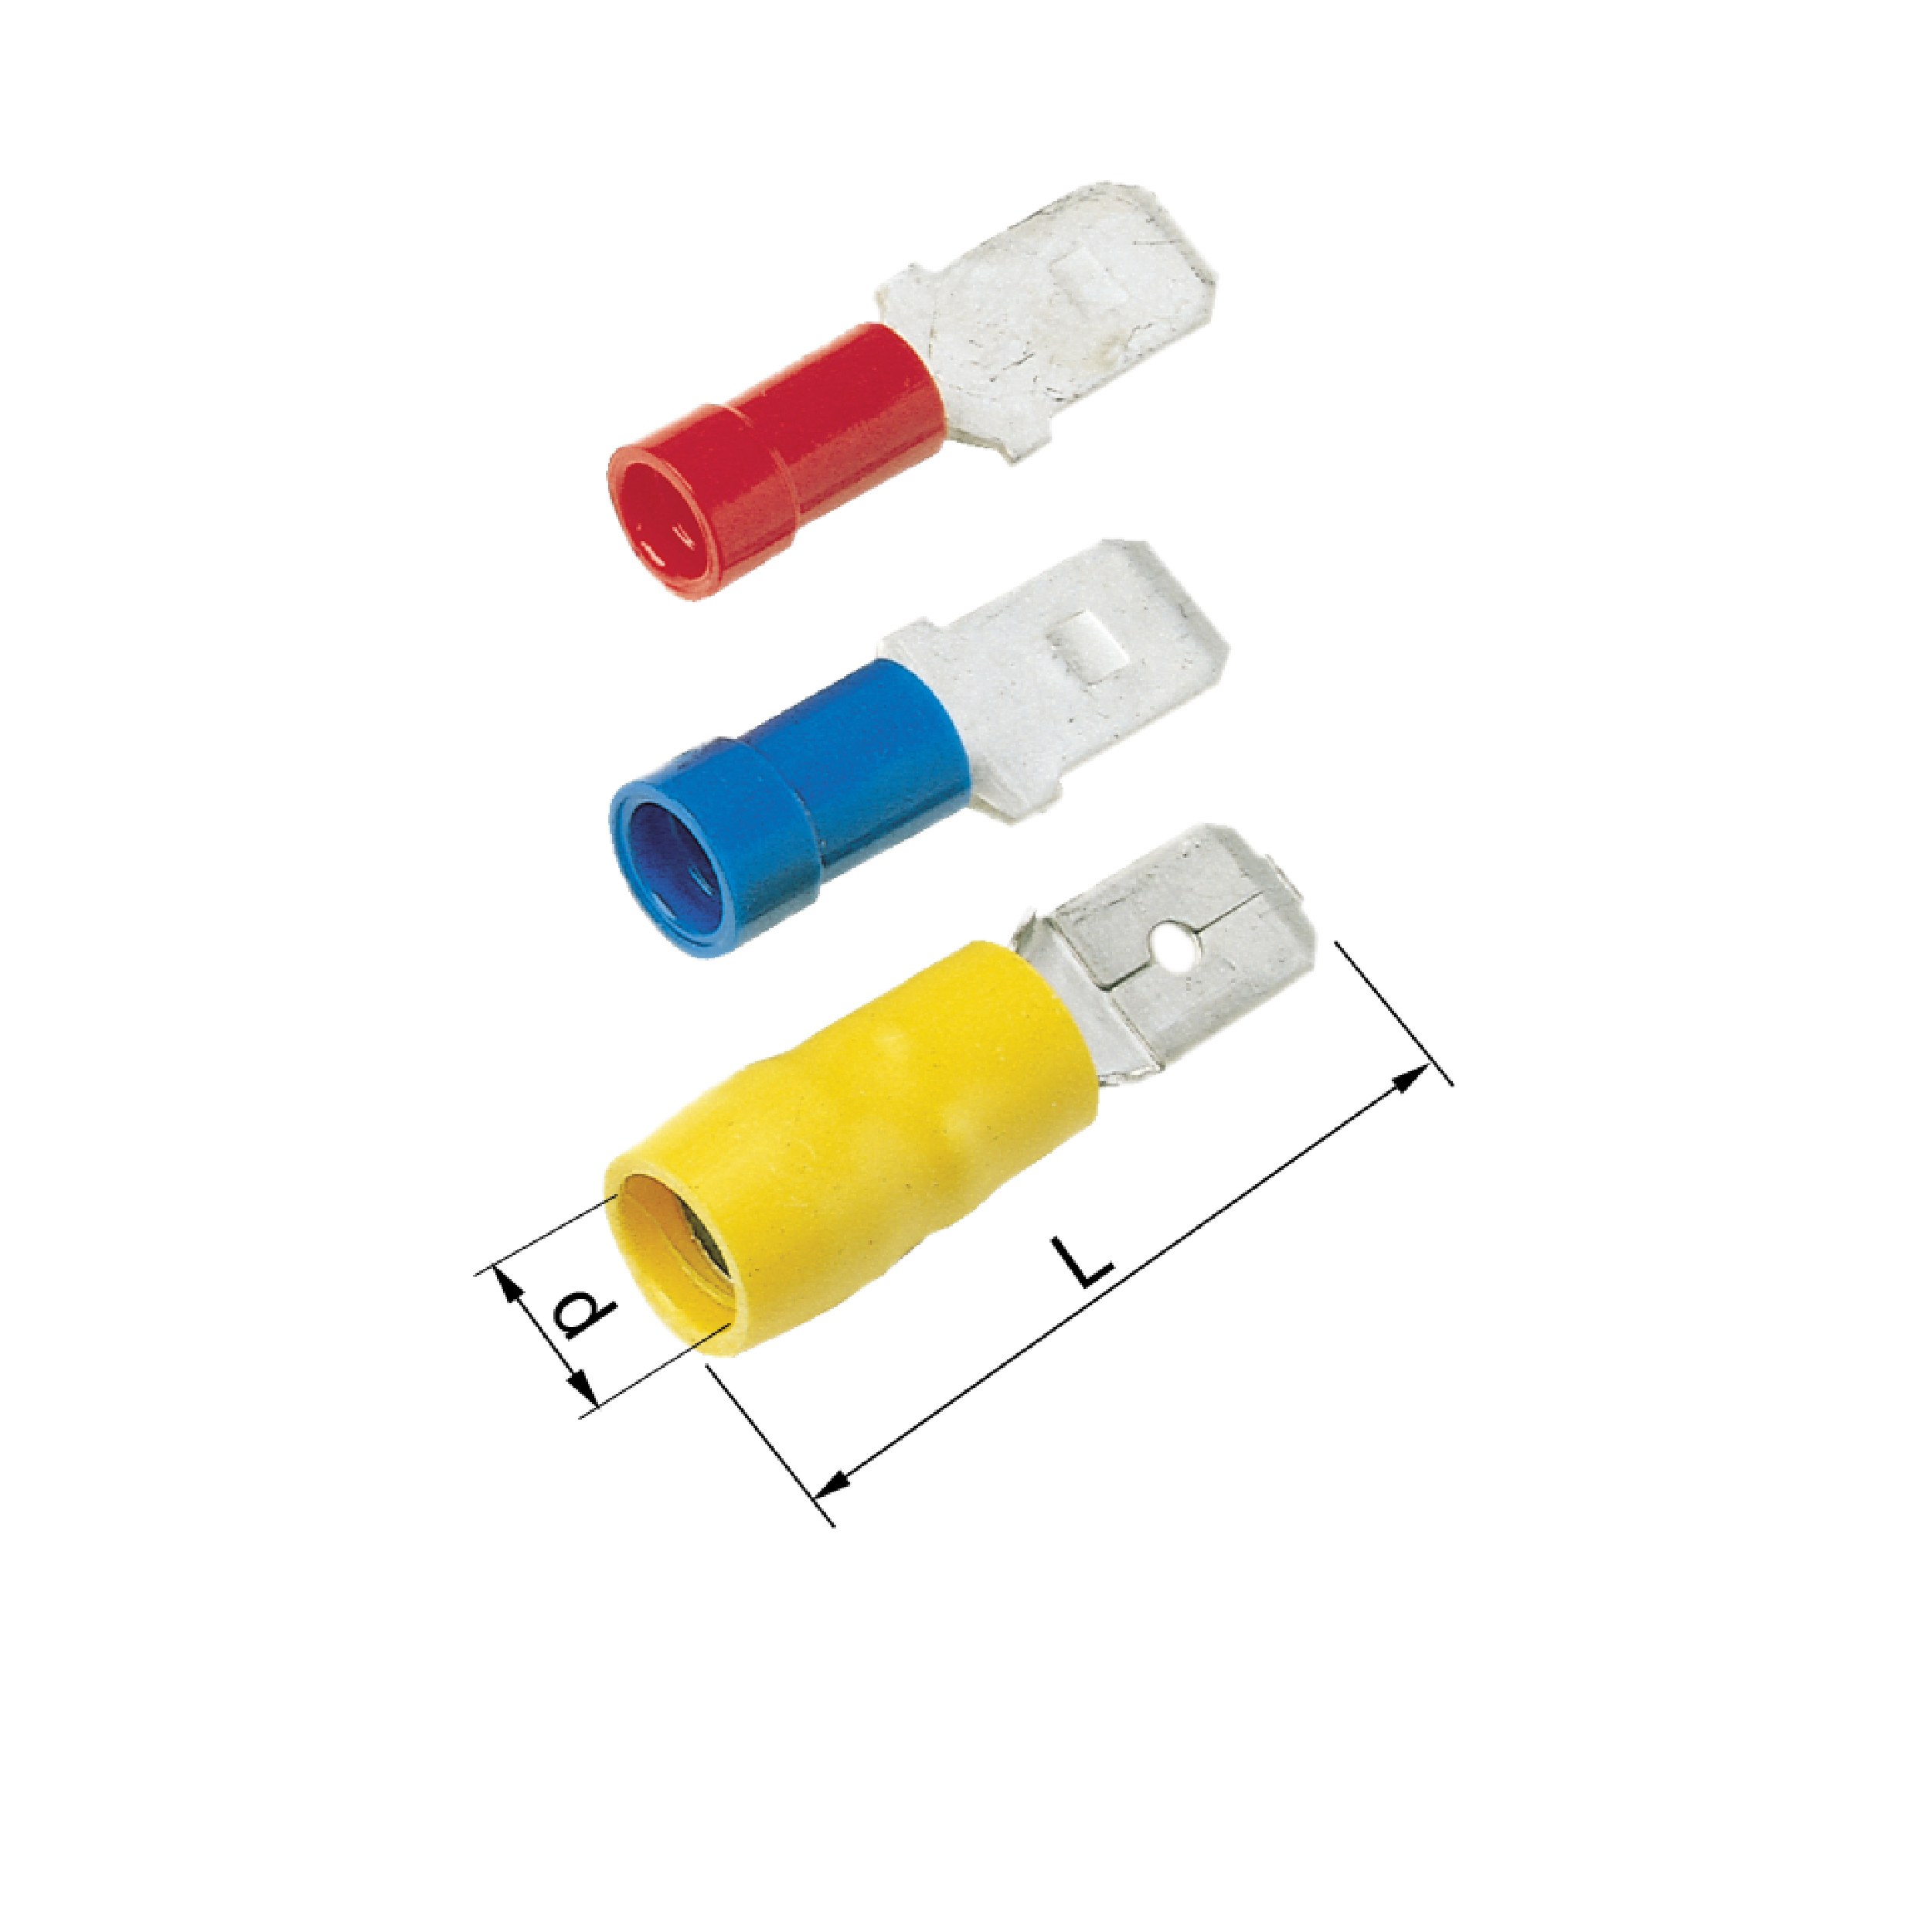 Elpress Pre Insulated Tabs 0.5-6mm² Halogen Free